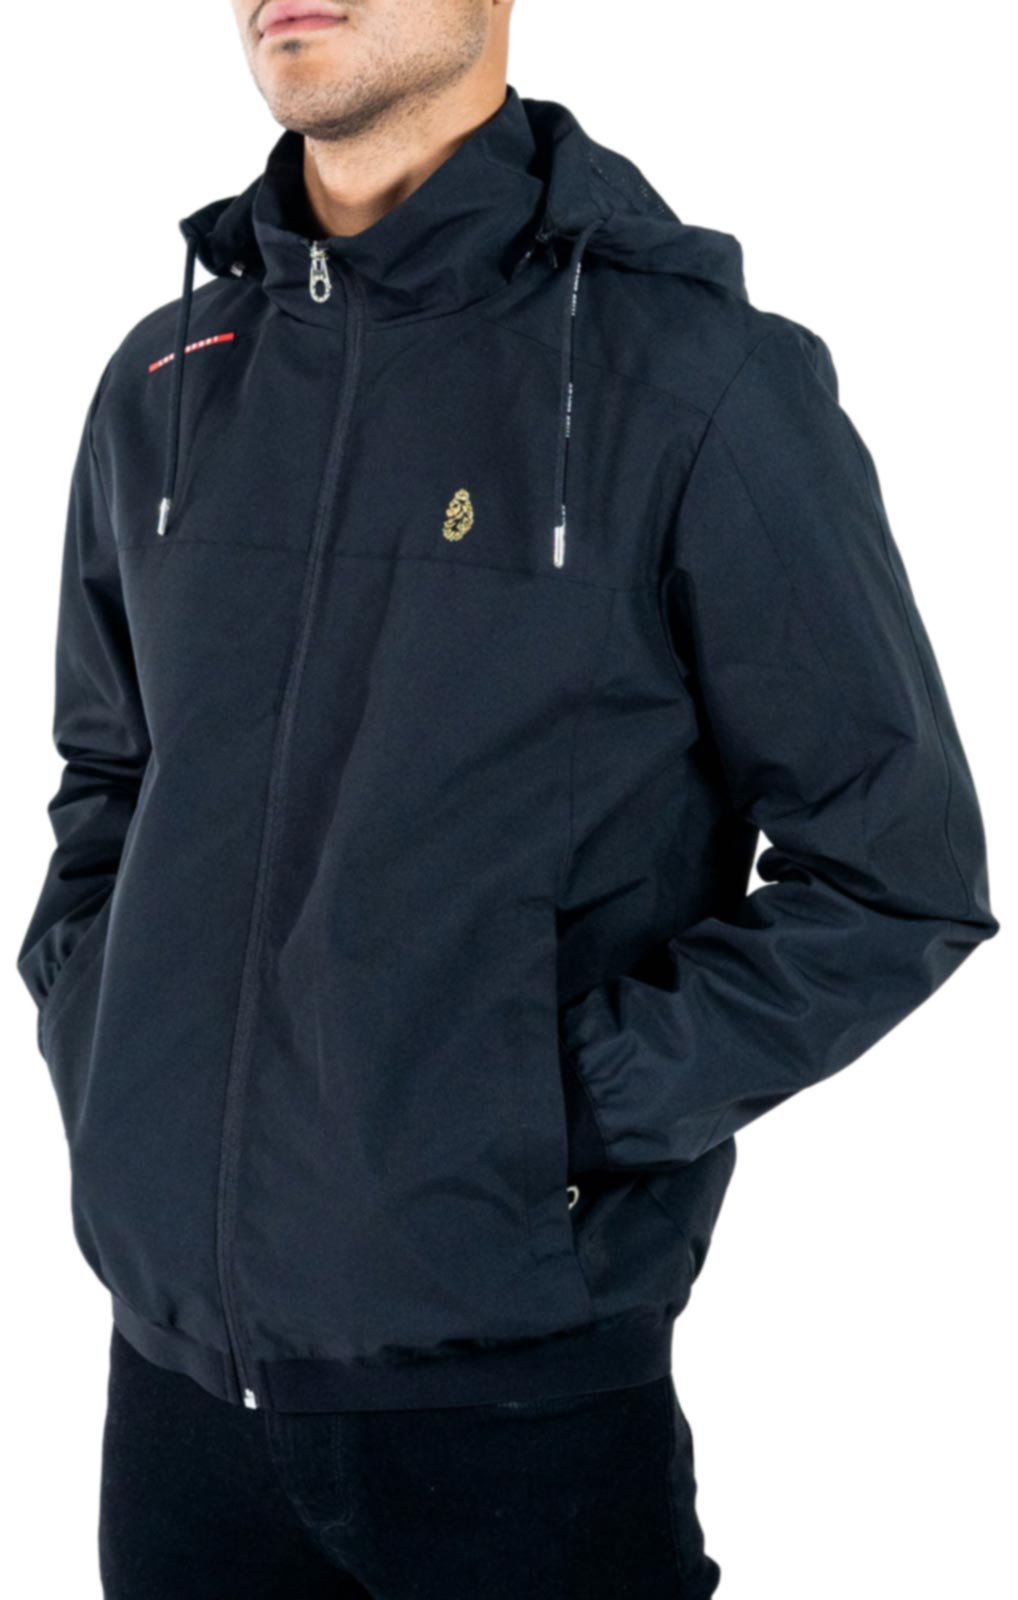 Luke 1977 Brownhills Benyon Jacket Black